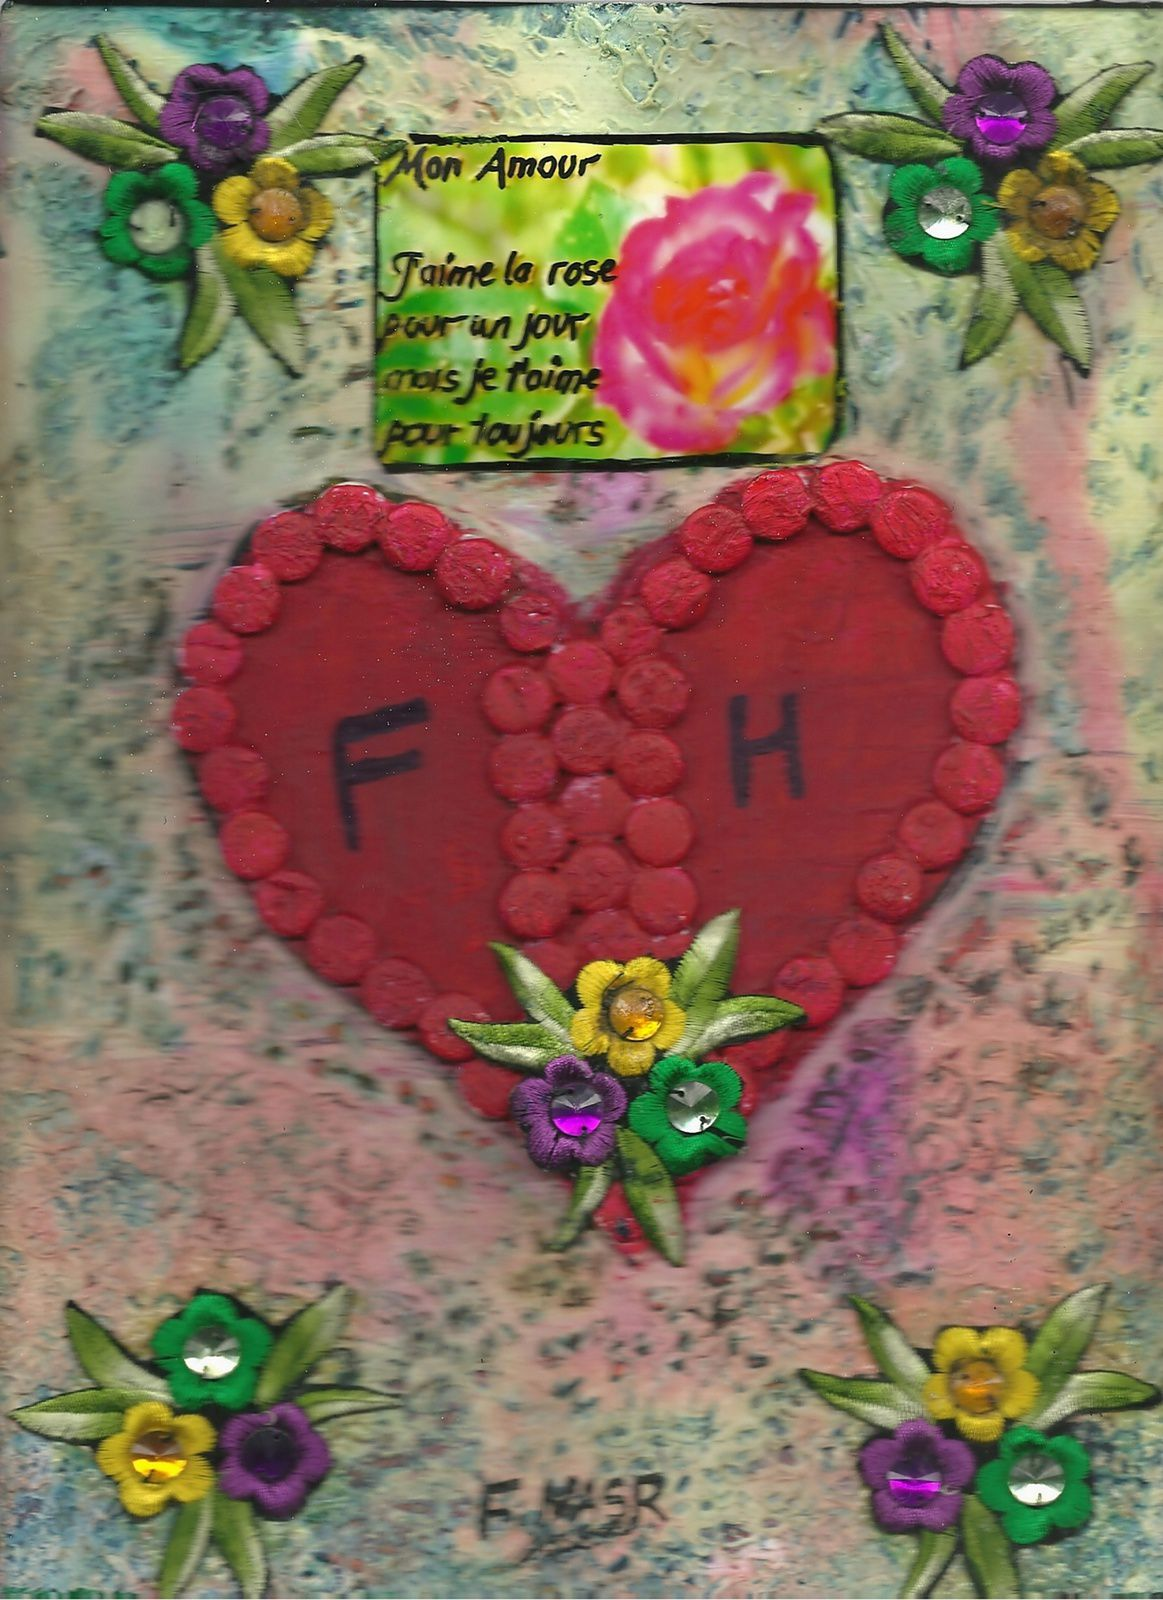 art,journal,carterie,scrapbooking,vintage,carte,faite,main,offrande,amour,valentin,cœur,oiseaux,cage,fleurs,toi,moi,love,card,valentine,day,heart,beads,you,me,Sally,and,Jack,offering,red,rose,Fathia,Nasr,